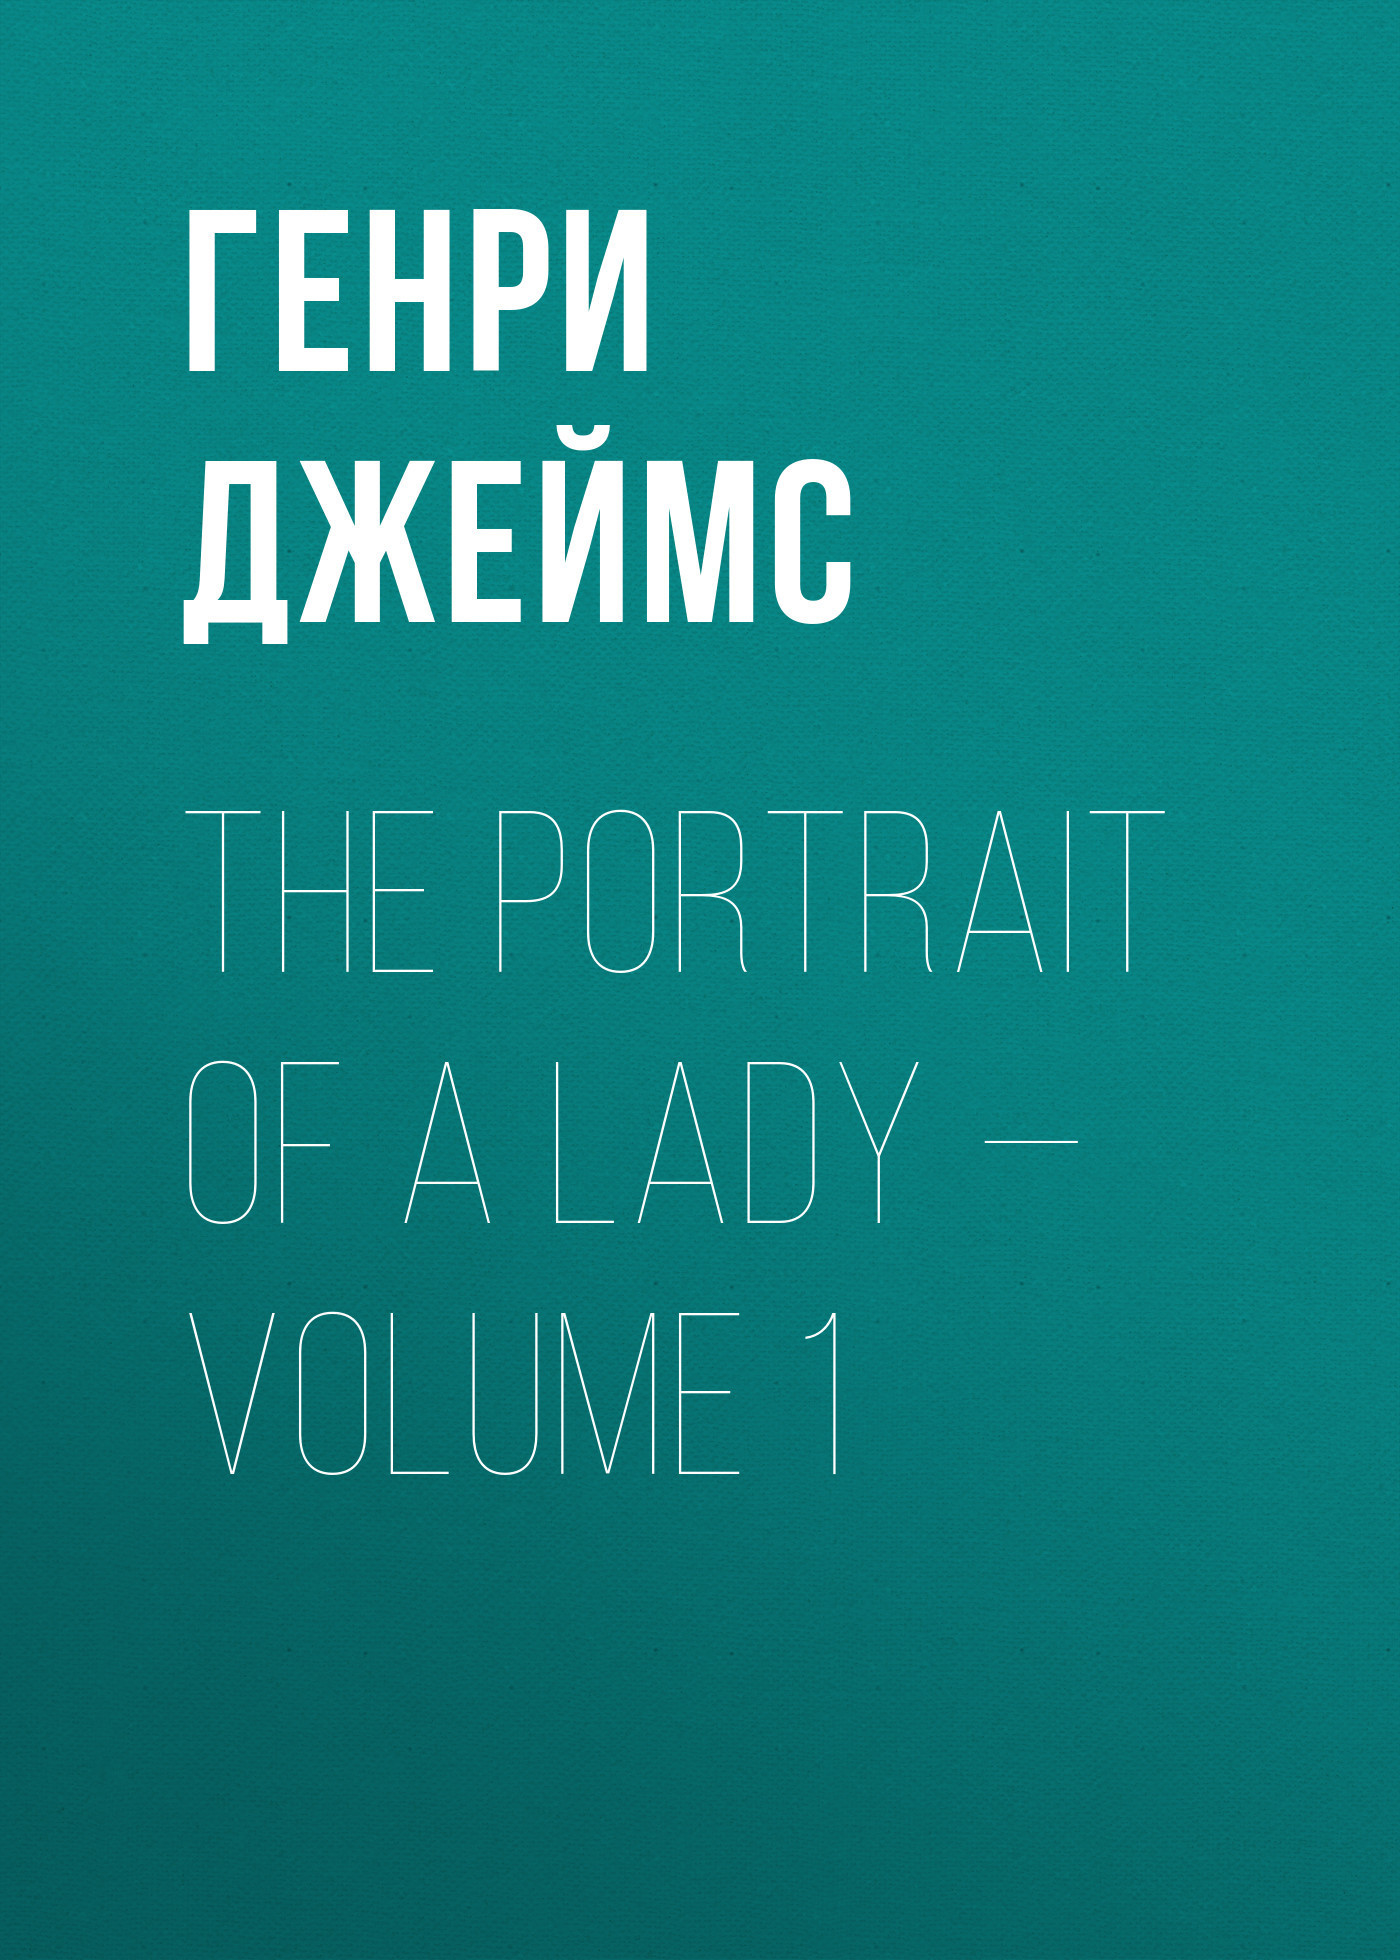 Генри Джеймс The Portrait of a Lady — Volume 1 the portrait of a lady 2e nce